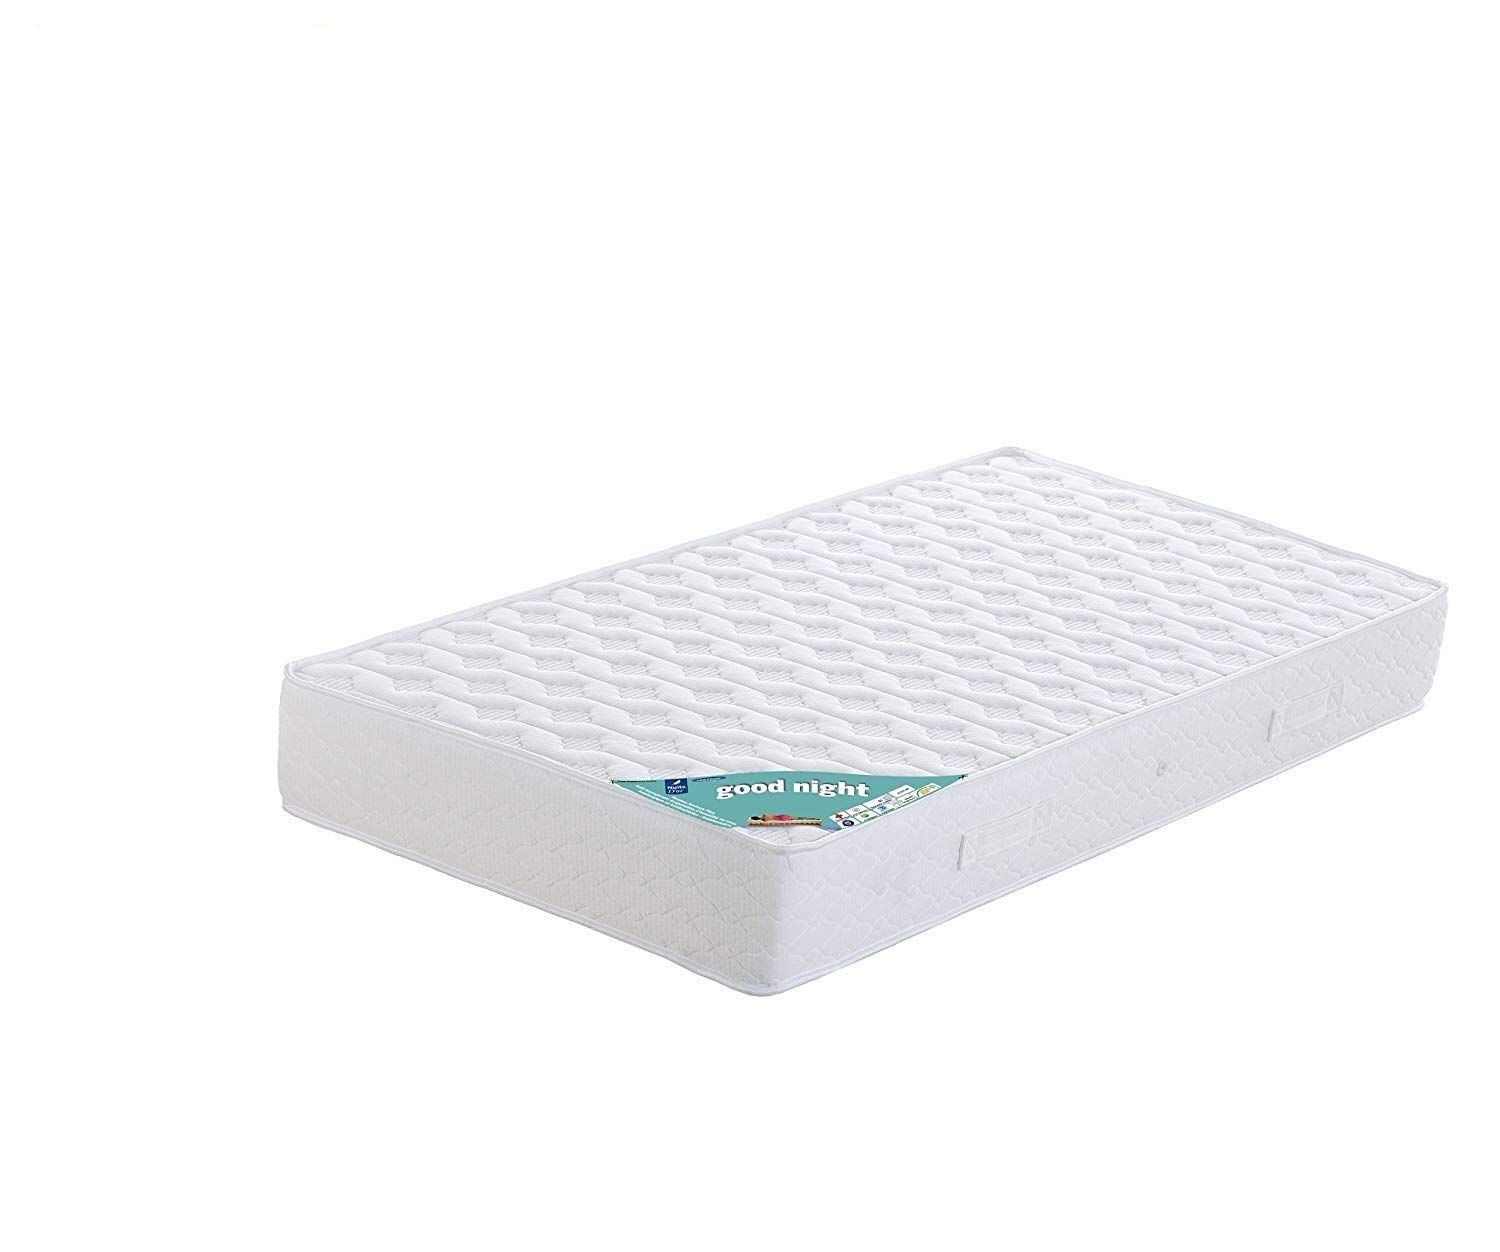 Nuits D Or Goodnight Matelas 120x190 Densite 35 Kg M3 Hauteur 21 Cm Soutien Ferme Orthopedique In 2020 Mattress Home Decor